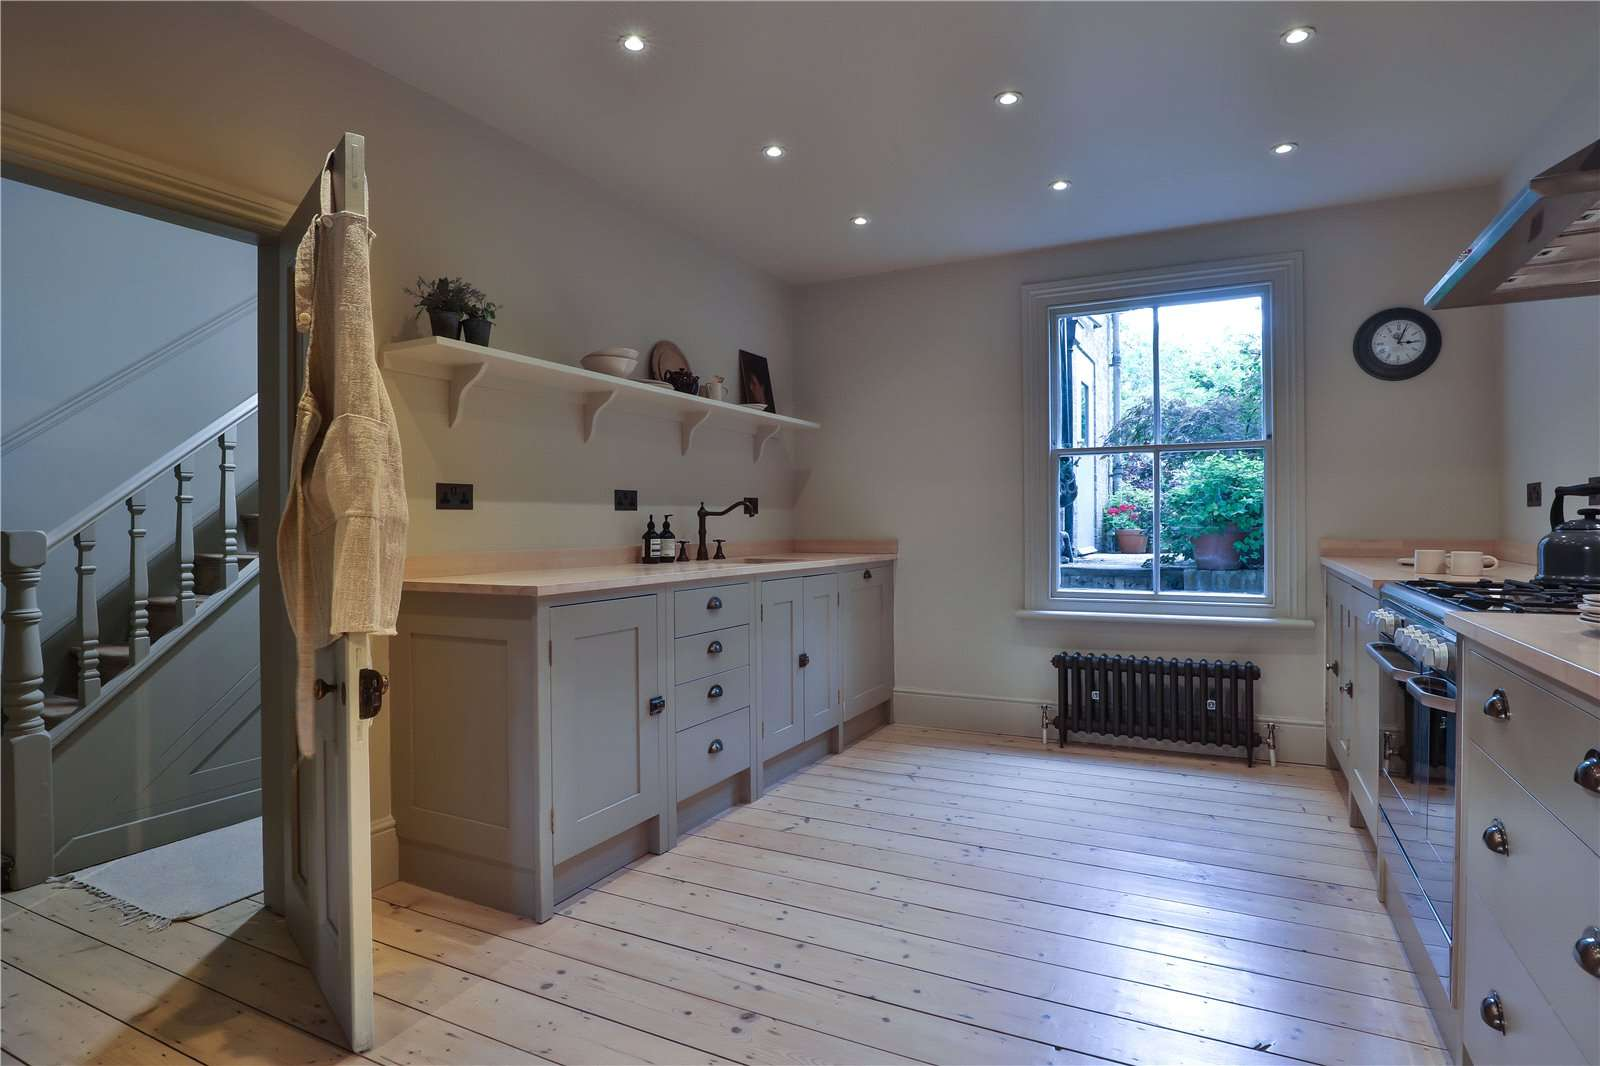 An elegantly-proportioned Victorian house on Woodstock Road in Oxford - Image Gallery 10 - Kitchen